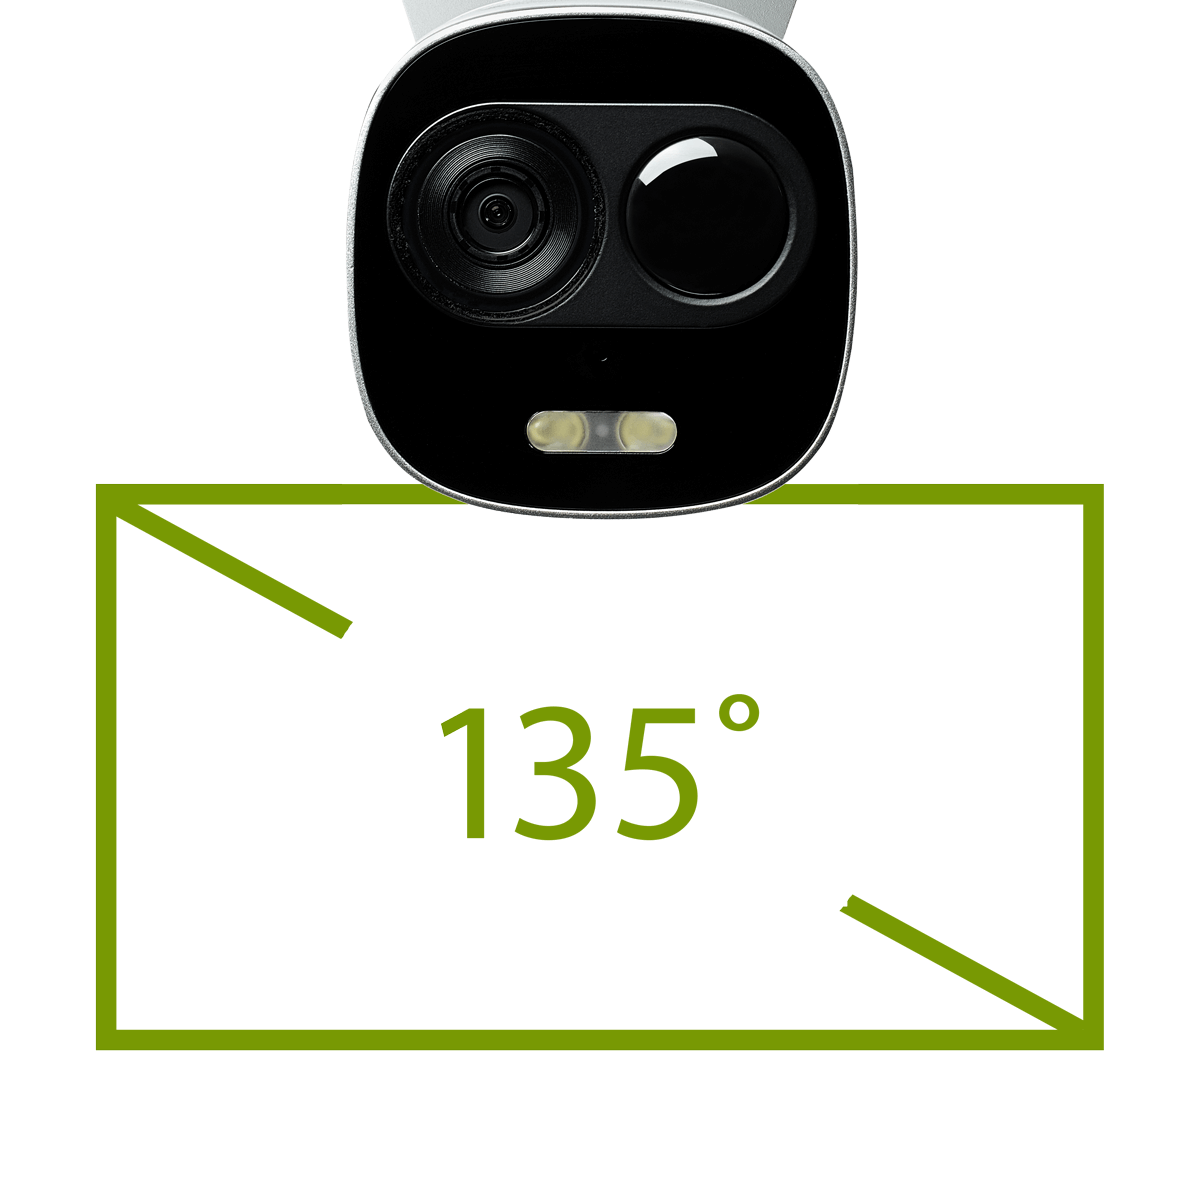 WiFi security camera with wide angle lens